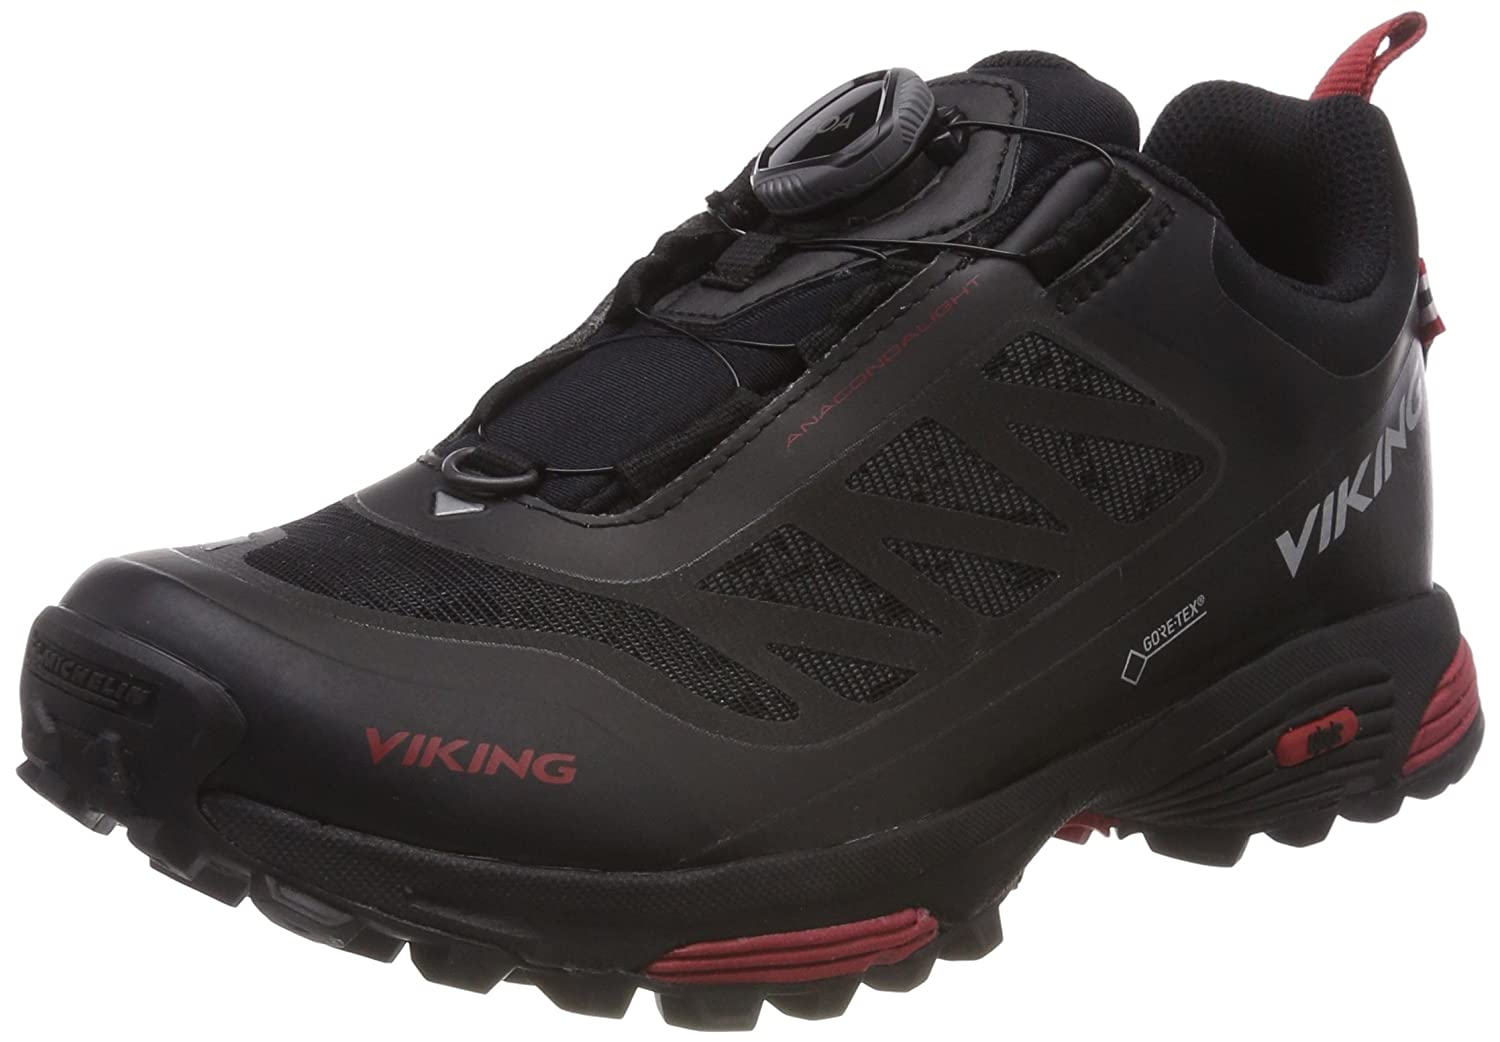 Viking Anaconda Light Boa GTX, Zapatillas de Senderismo Unisex Adulto